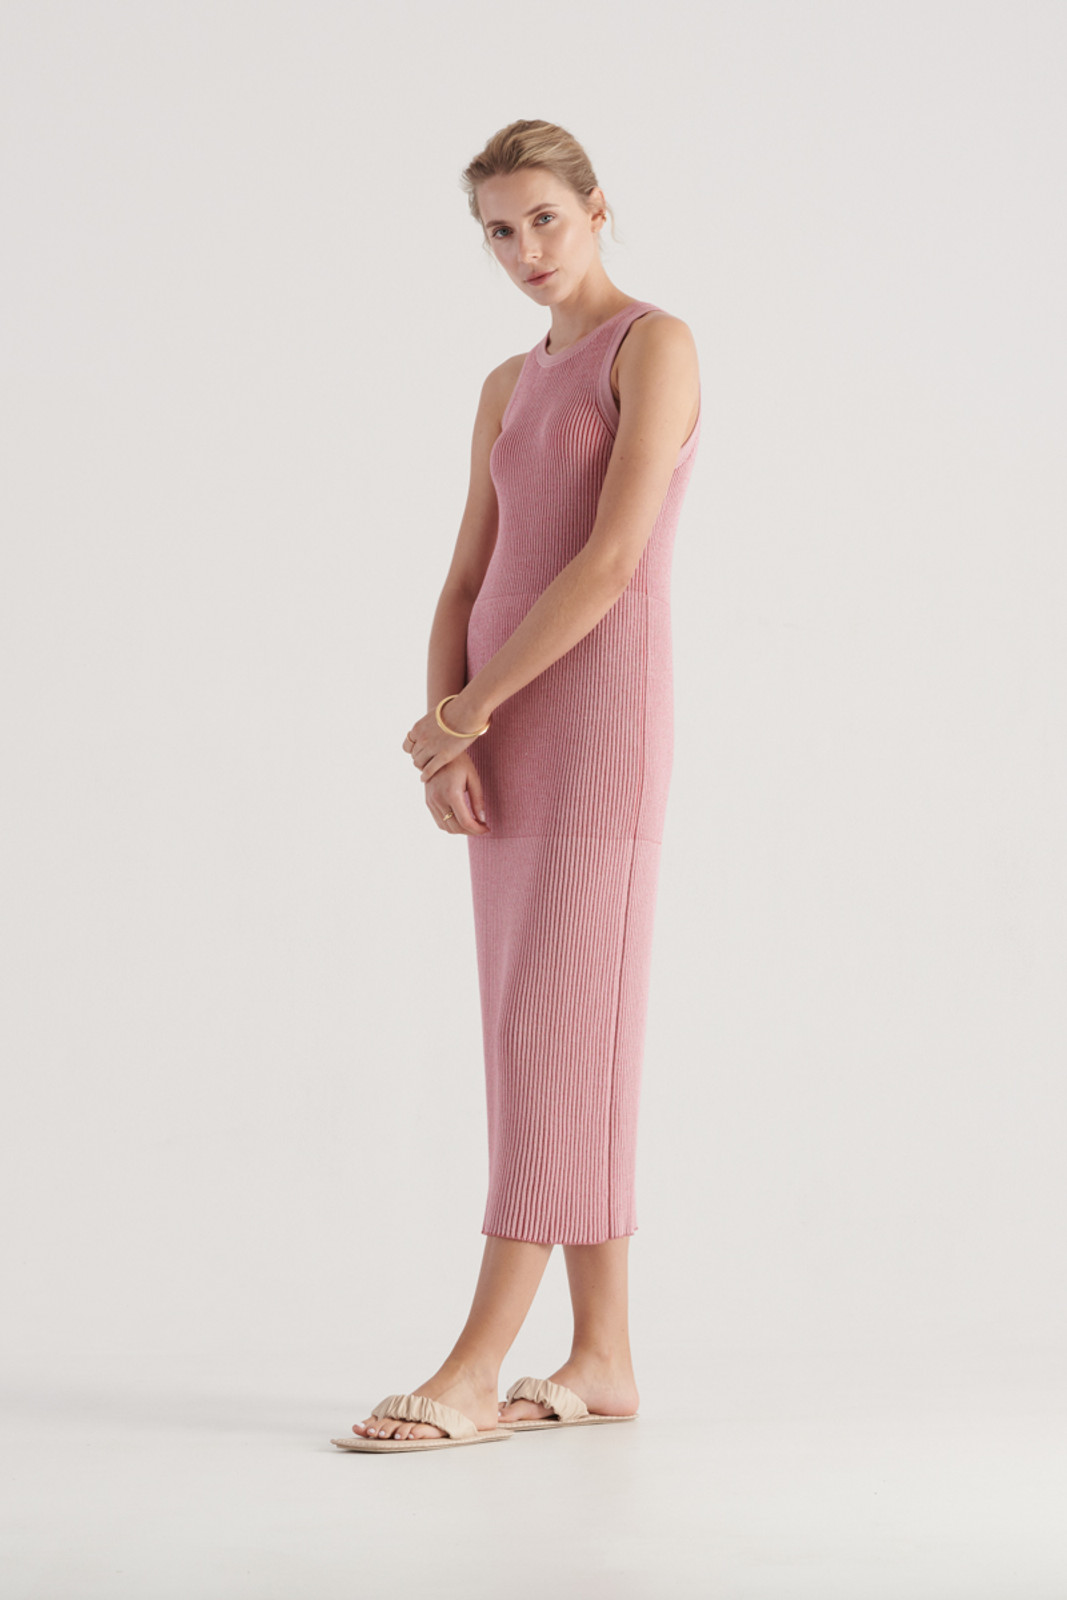 Elka Collective WomensStevie Knit Dress Pink/Red  2